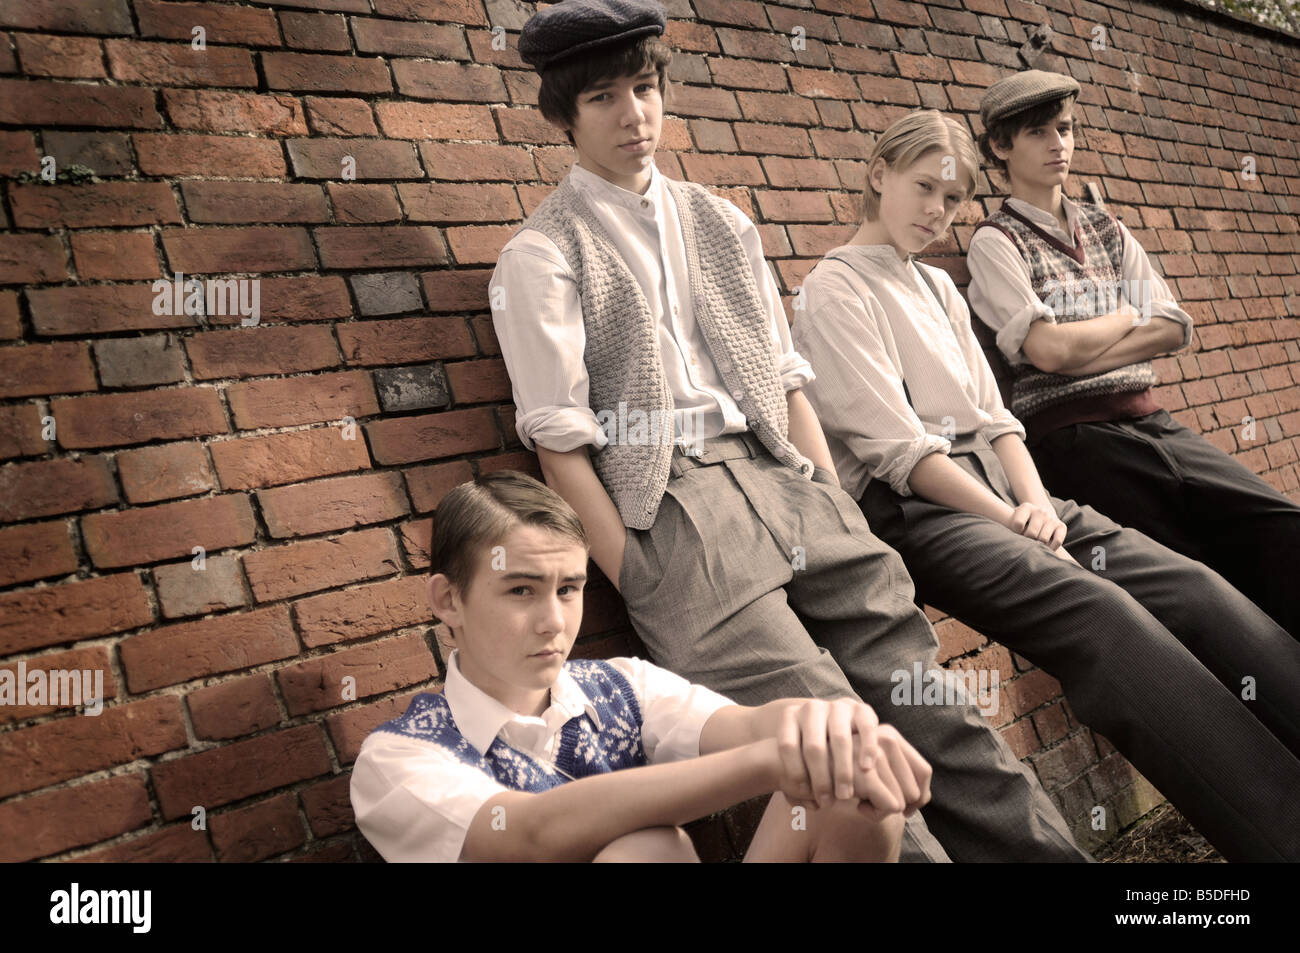 Royalty free photograph of British boys evacuees in wartime standing by brick wall looking lonely with 1940s style - Stock Image